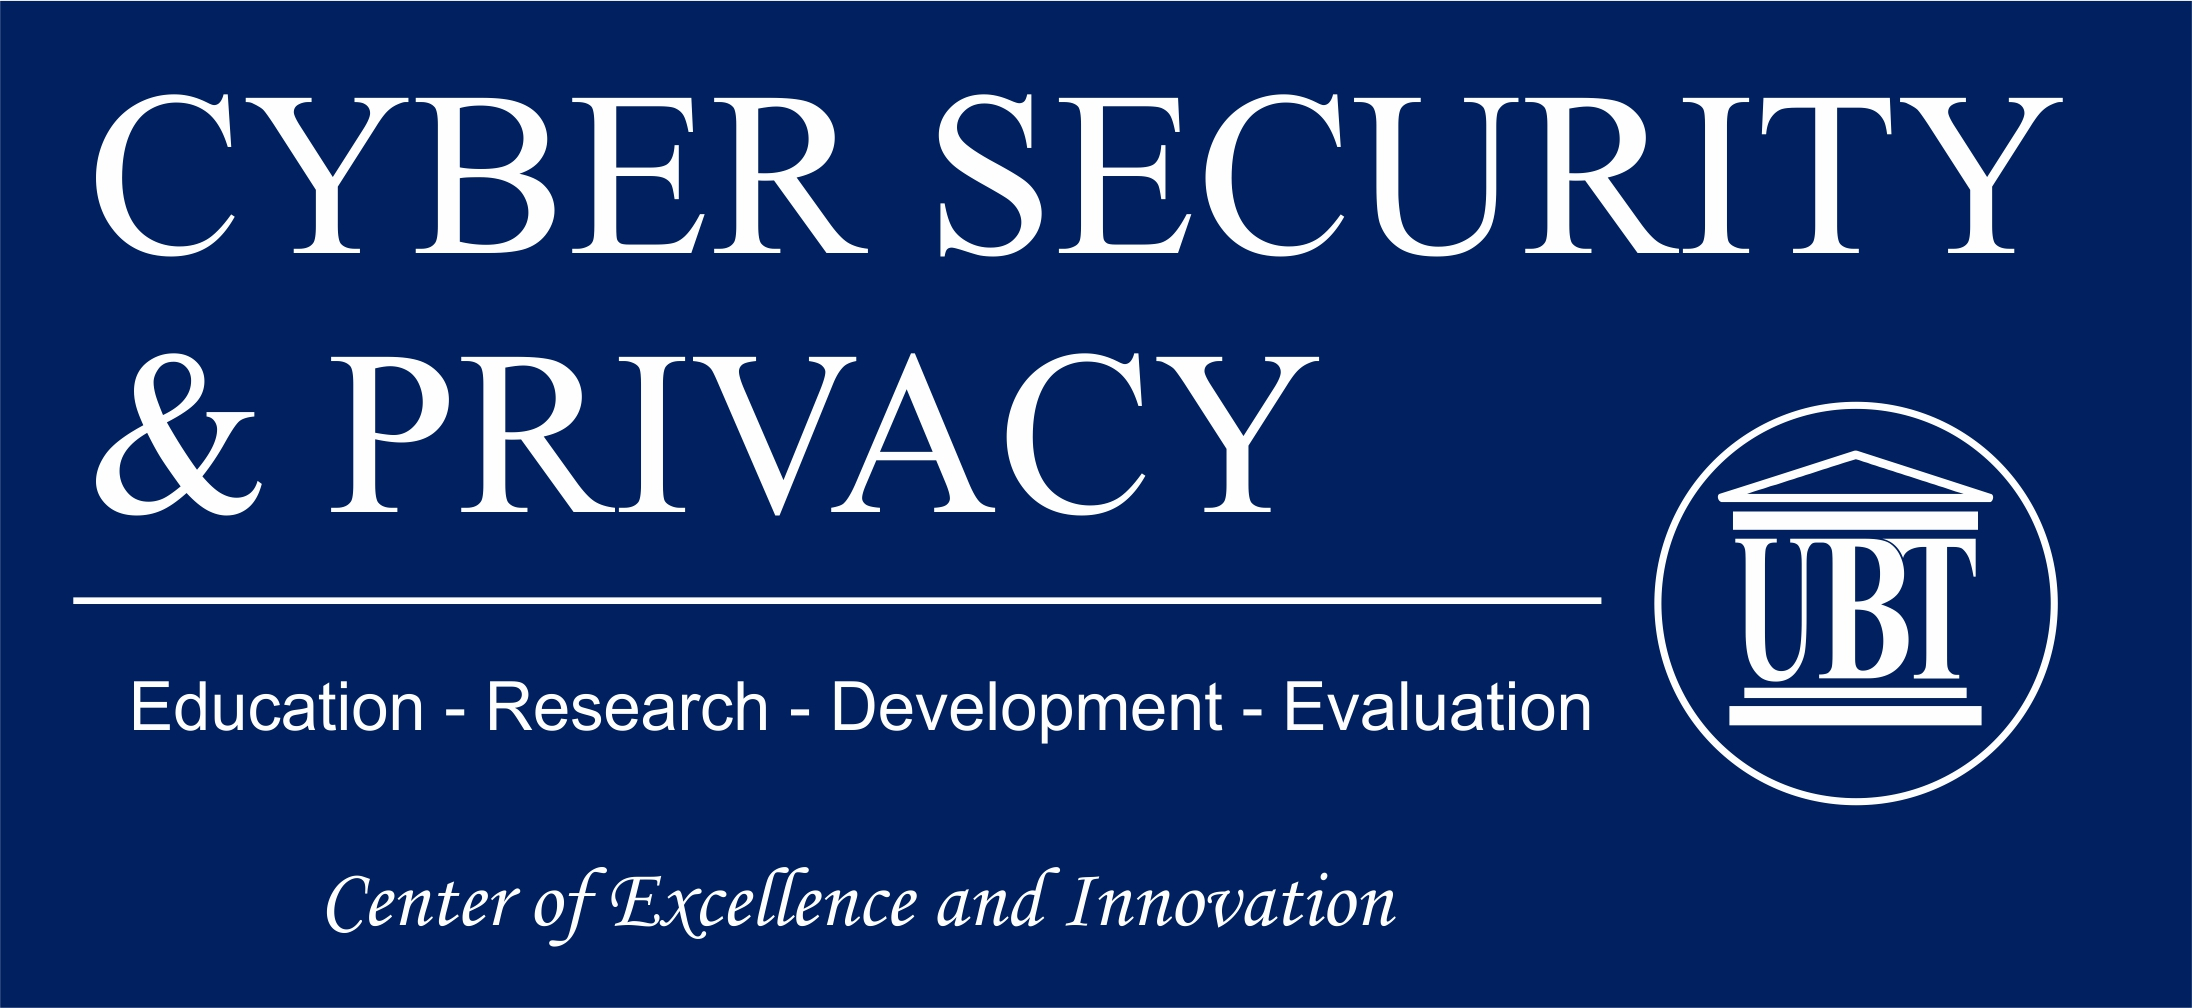 LOGO - Cyber Security and Privacy